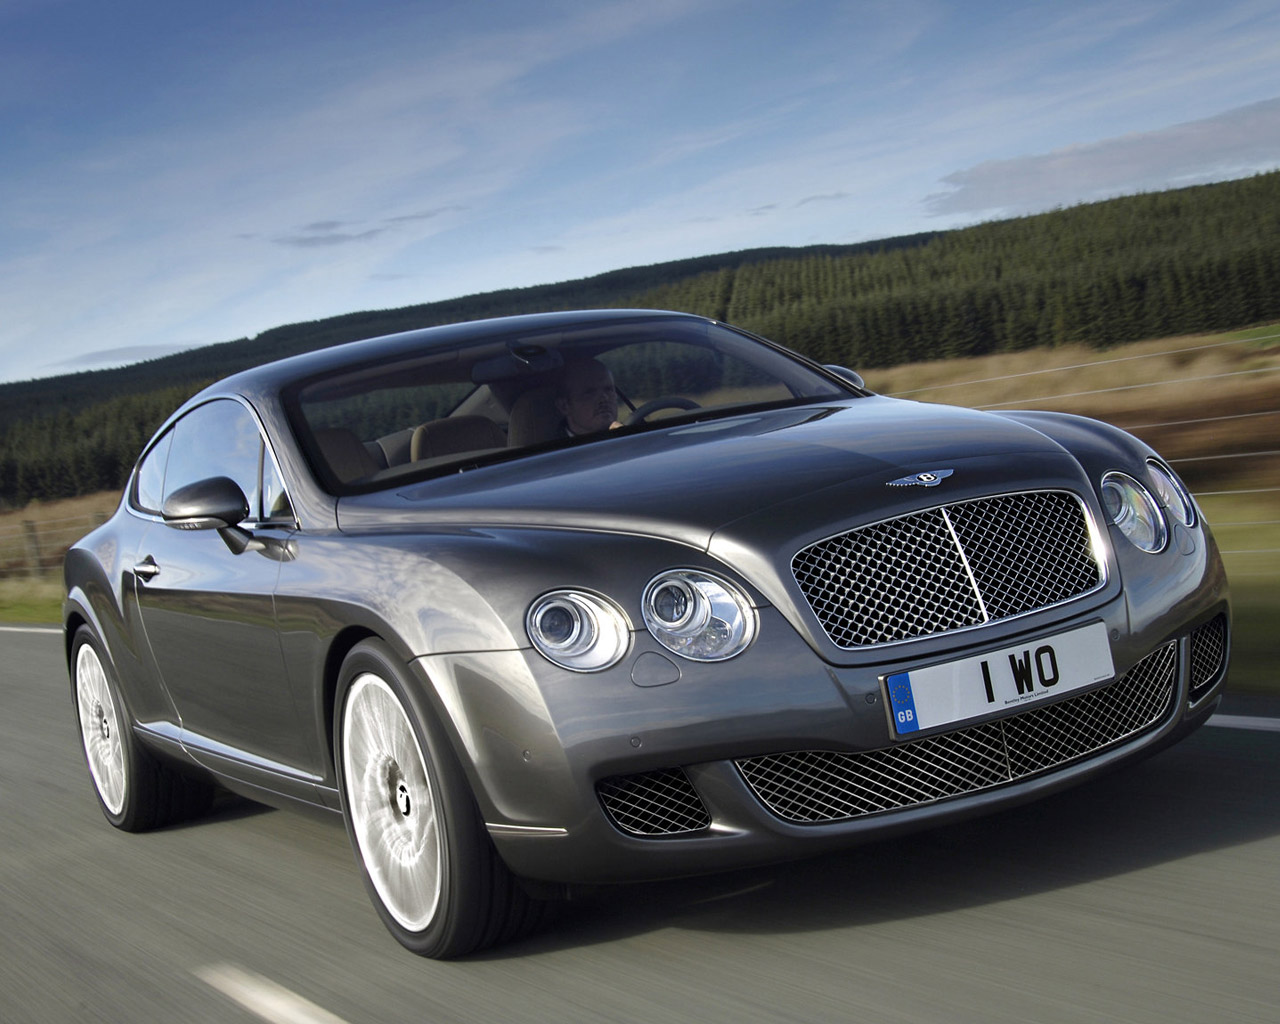 wallpaper backgrounds bentley continental gt wallpapers. Black Bedroom Furniture Sets. Home Design Ideas